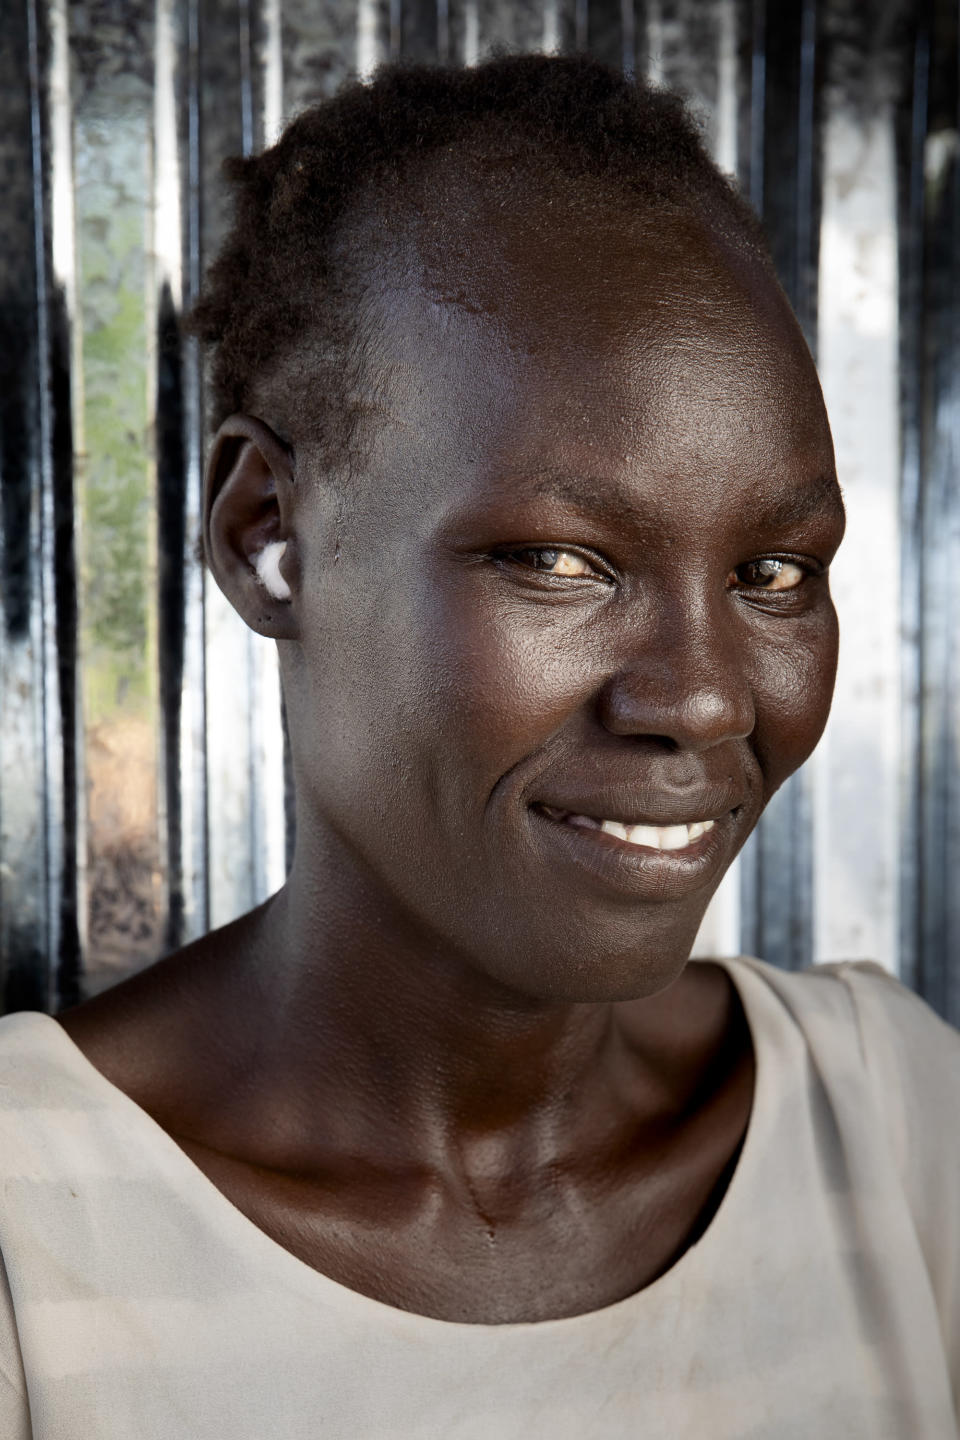 Belinda Idjidio, 36-years-old mother of 5, poses for a portrait at Paska Itwari Beda's Juba, South Sudan home, Saturday, May 29, 2021. With resources scarce, Beda and nine women formed a group that meets and contributes two of the barest necessities for warding off hunger and illness - money and bars of soap. They gather on Fridays, pooling supplies and handing them out to a different family every week. Over coffee, they share advice. (AP Photo/Adrienne Surprenant)